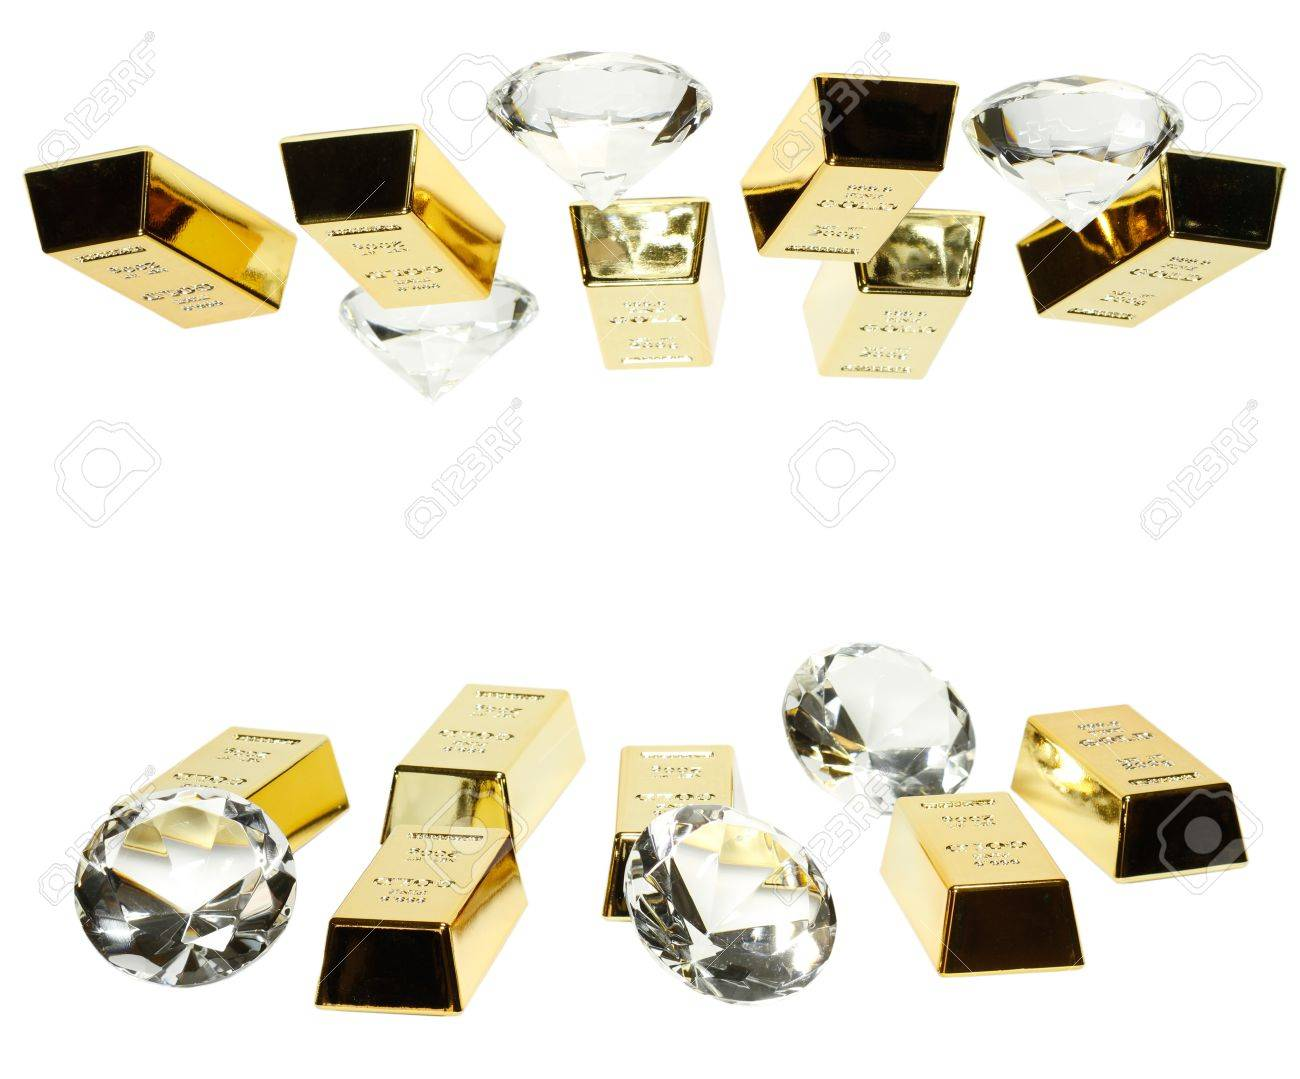 Gold bars and diamonds are together on the picture. Stock Photo - 10414484